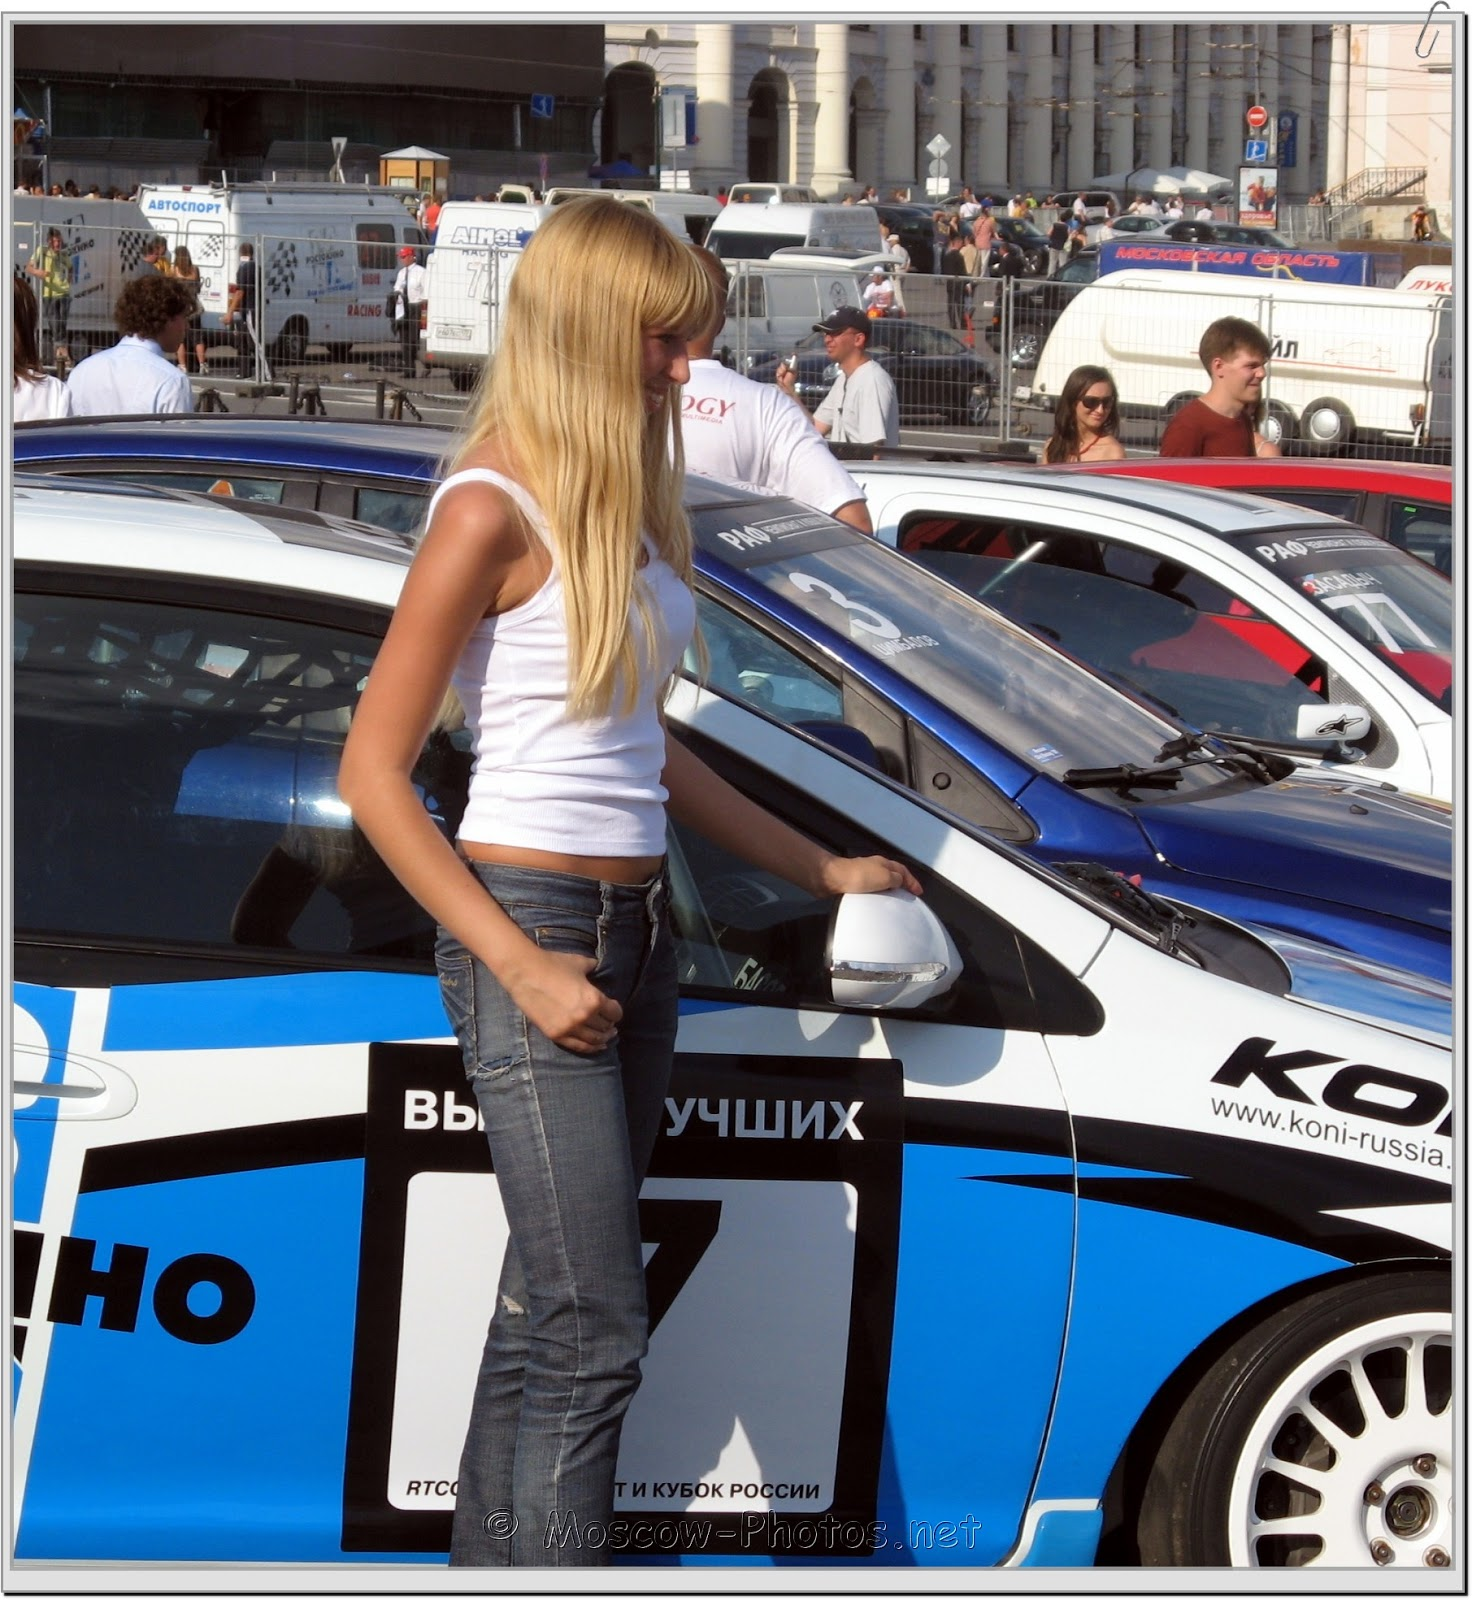 Smiling Blonde Moscow Girl at Bavaria Moscow City Racing 2008